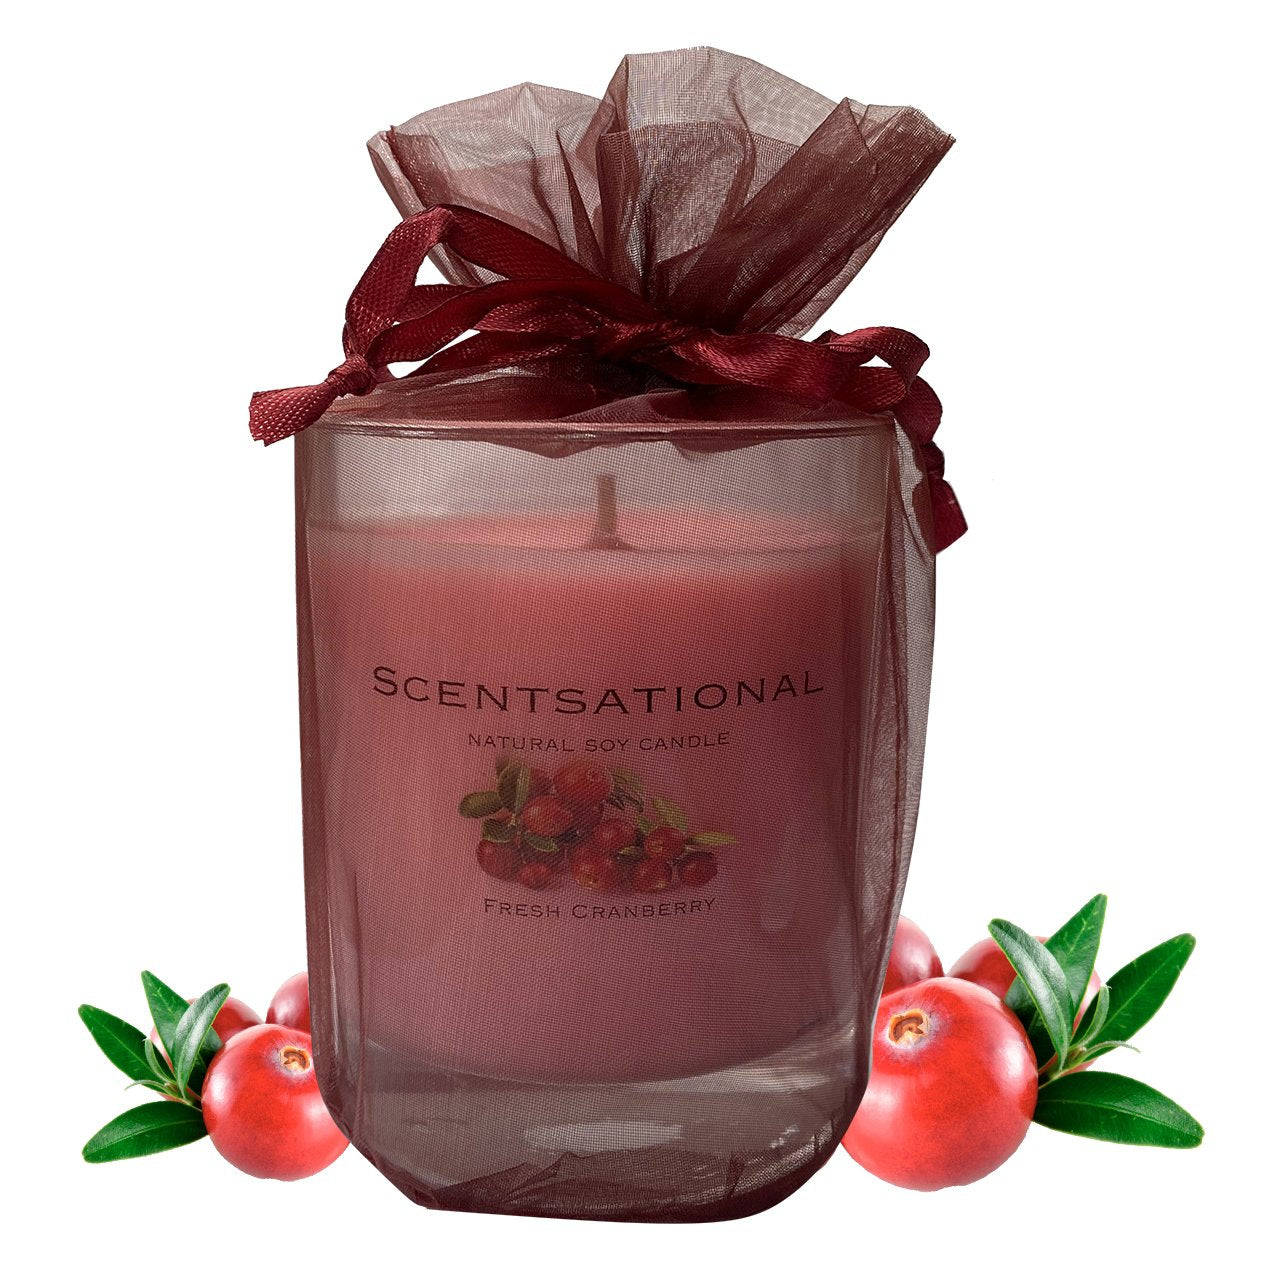 Scented Soy Candles CRANBERRY (11 oz) eliminates smoke, household and pet odors.